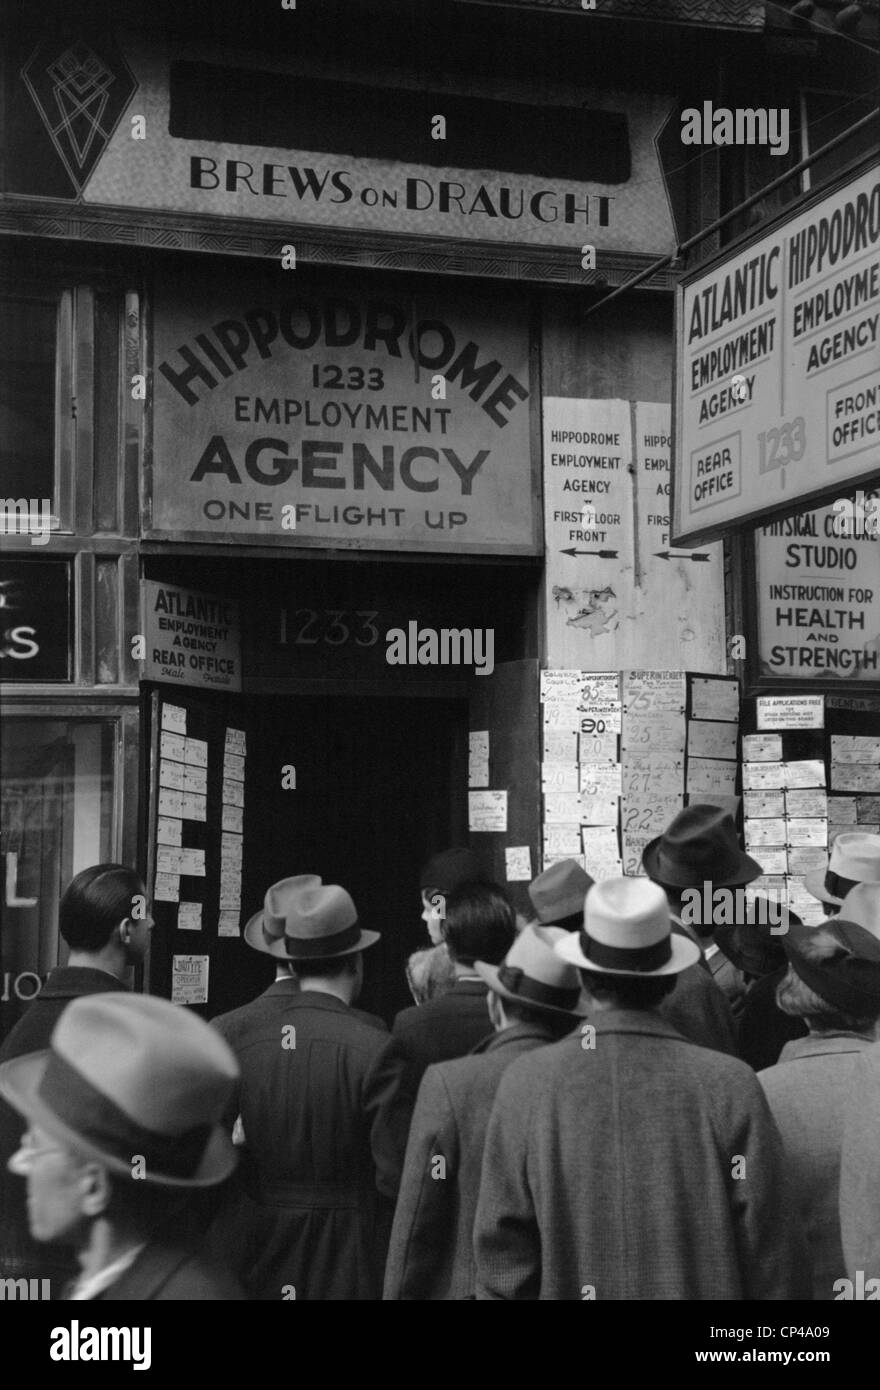 Crowd of job seekers at the Hippodrome Employment Agency at 1235 Sixth Avenue. New York City Dec. 1937. - Stock Image